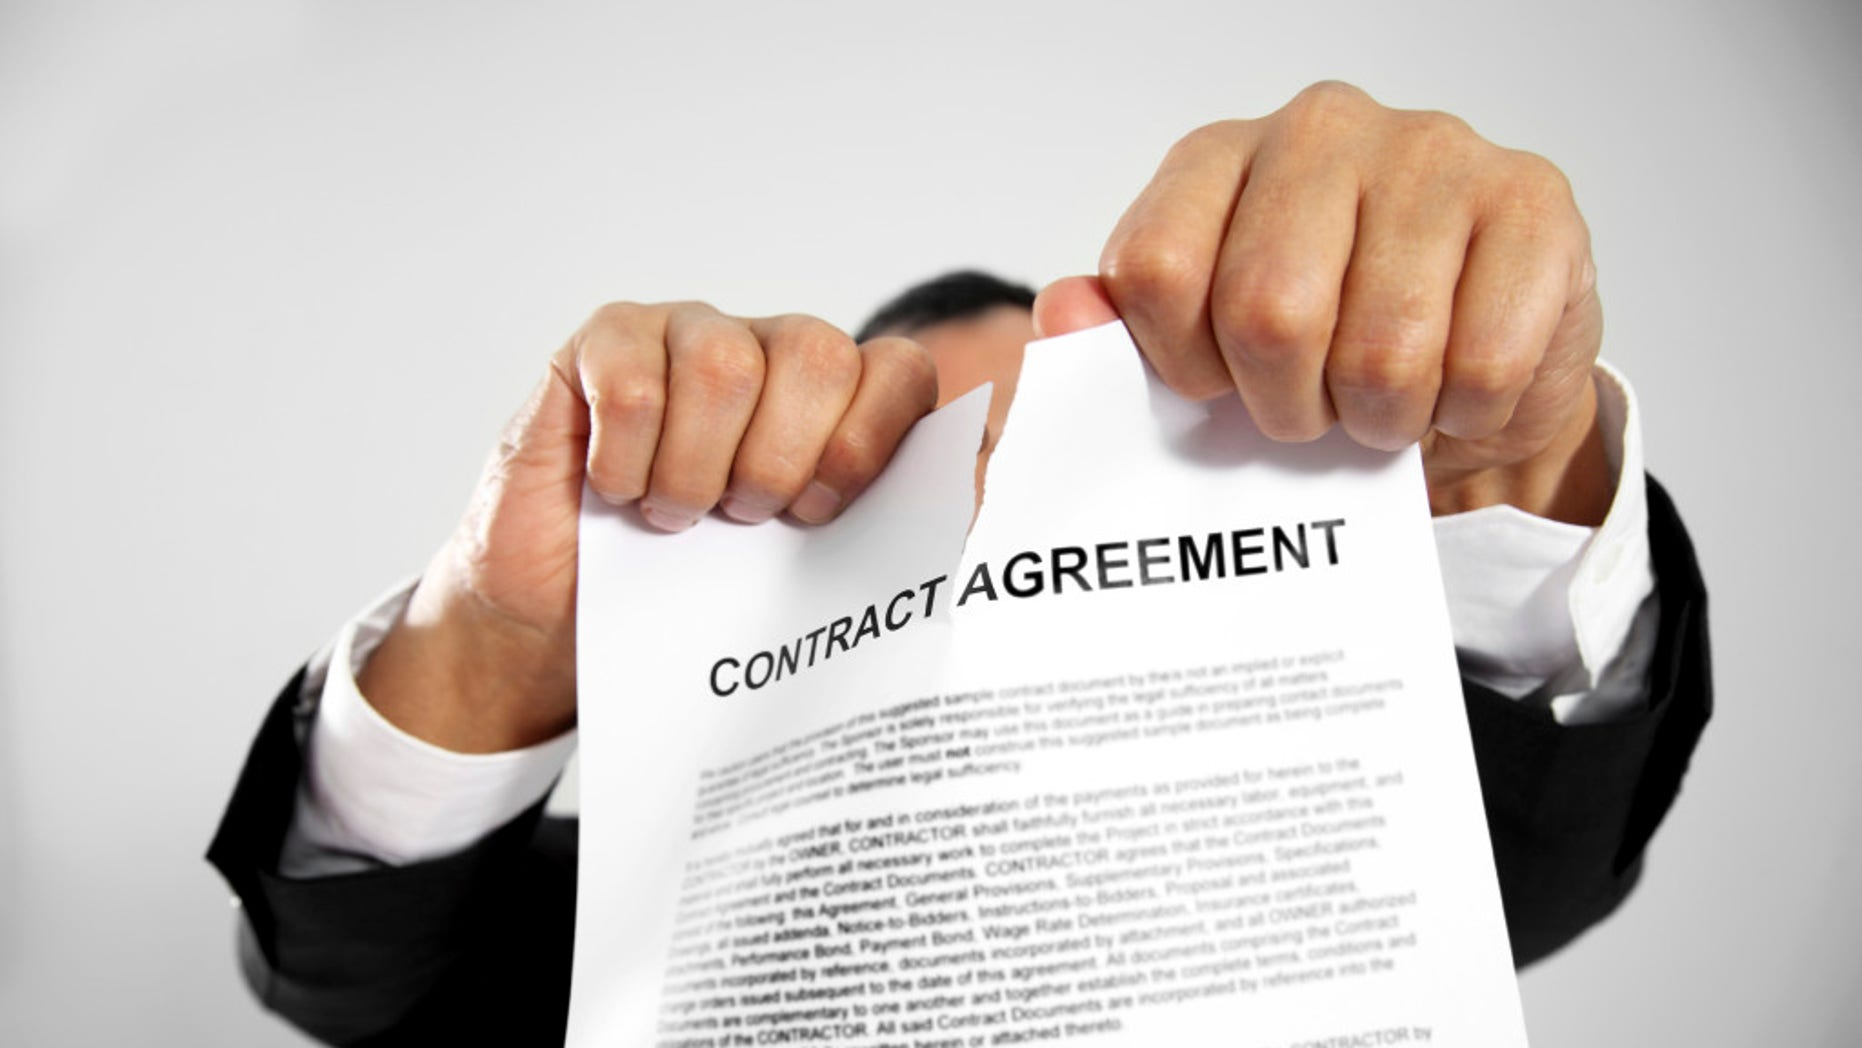 Sometimes you need to scrap a contract and start over.